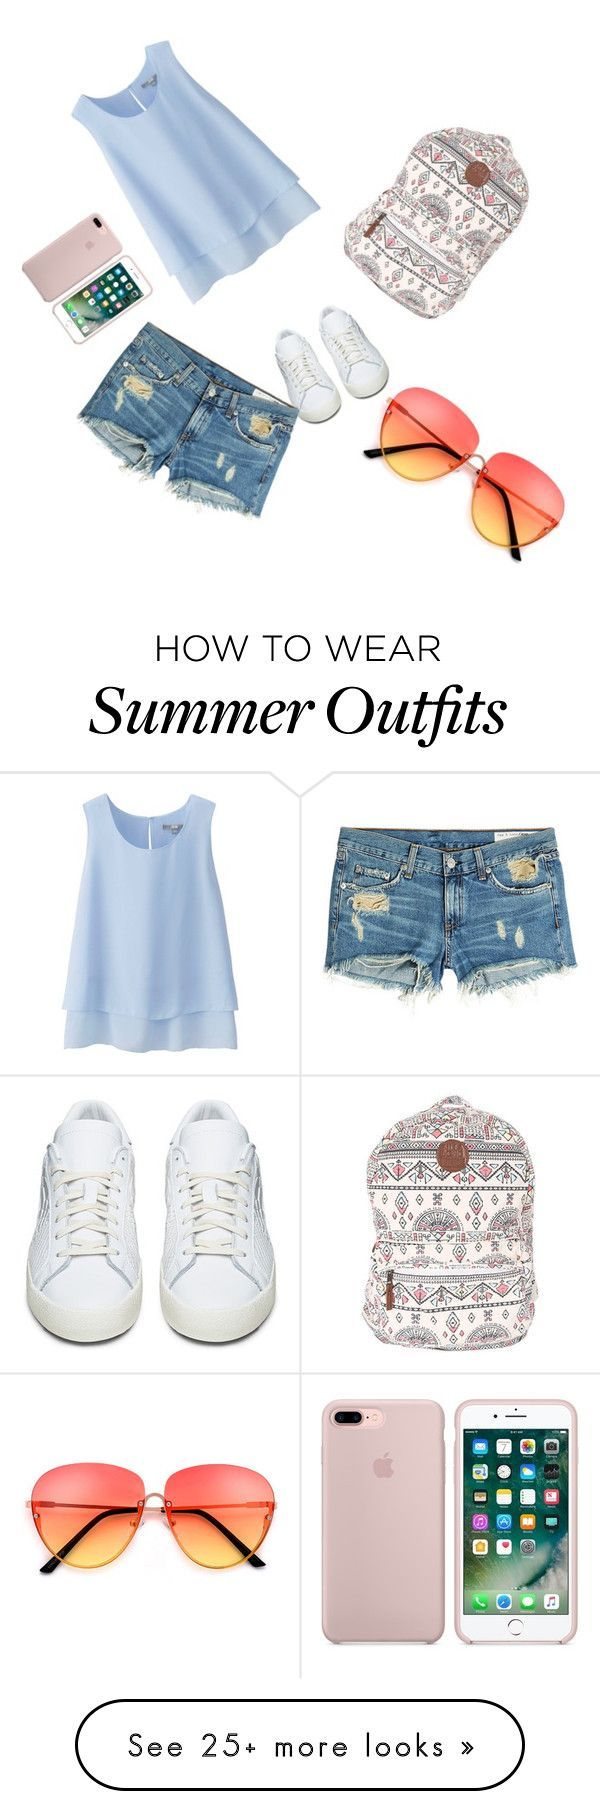 "Summer Outfits : ""My First Polyvore Outfit"" by camdawg on Polyvore featuring Uniqlo Bi"